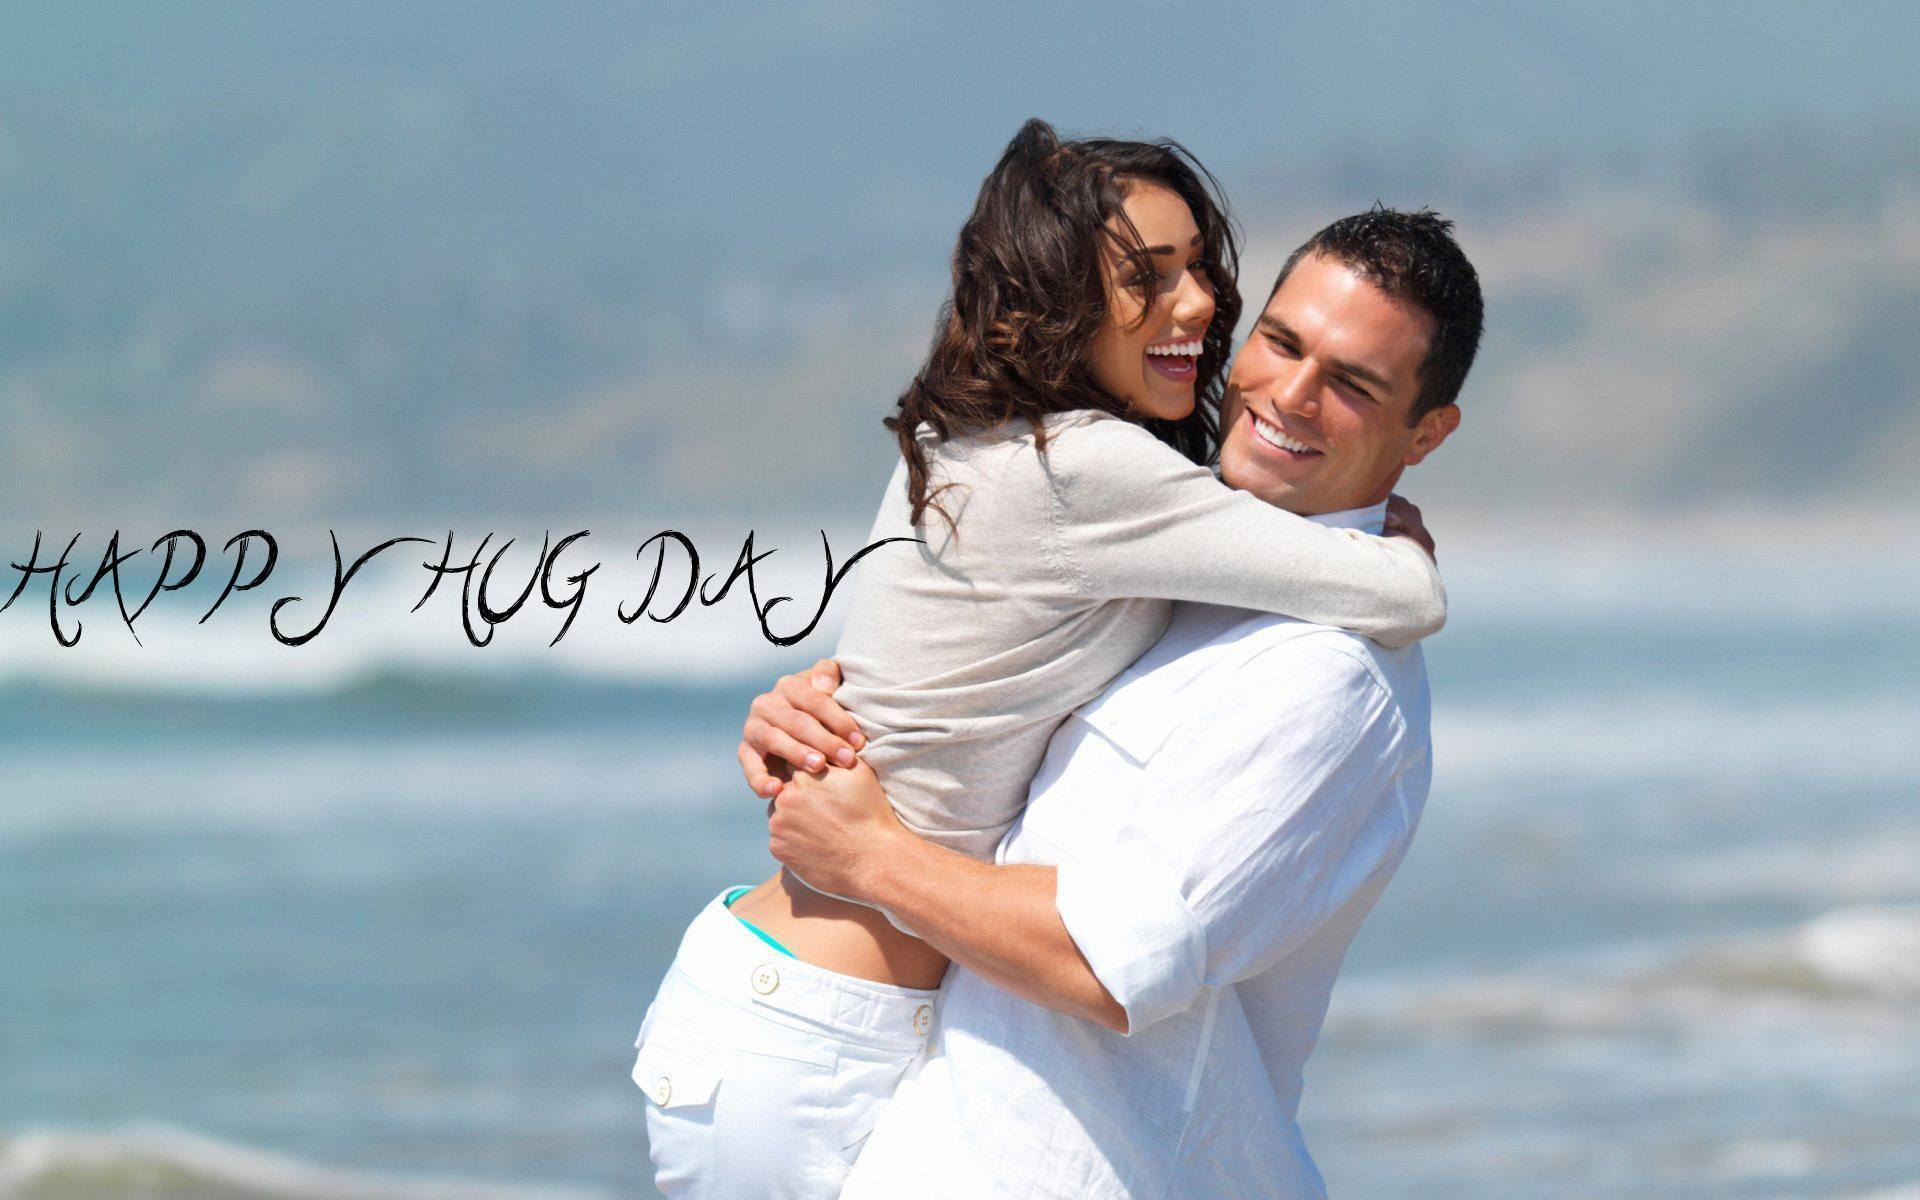 Express Your Affection To Your Love With 7 Romantic Hugs Happy Hug Day